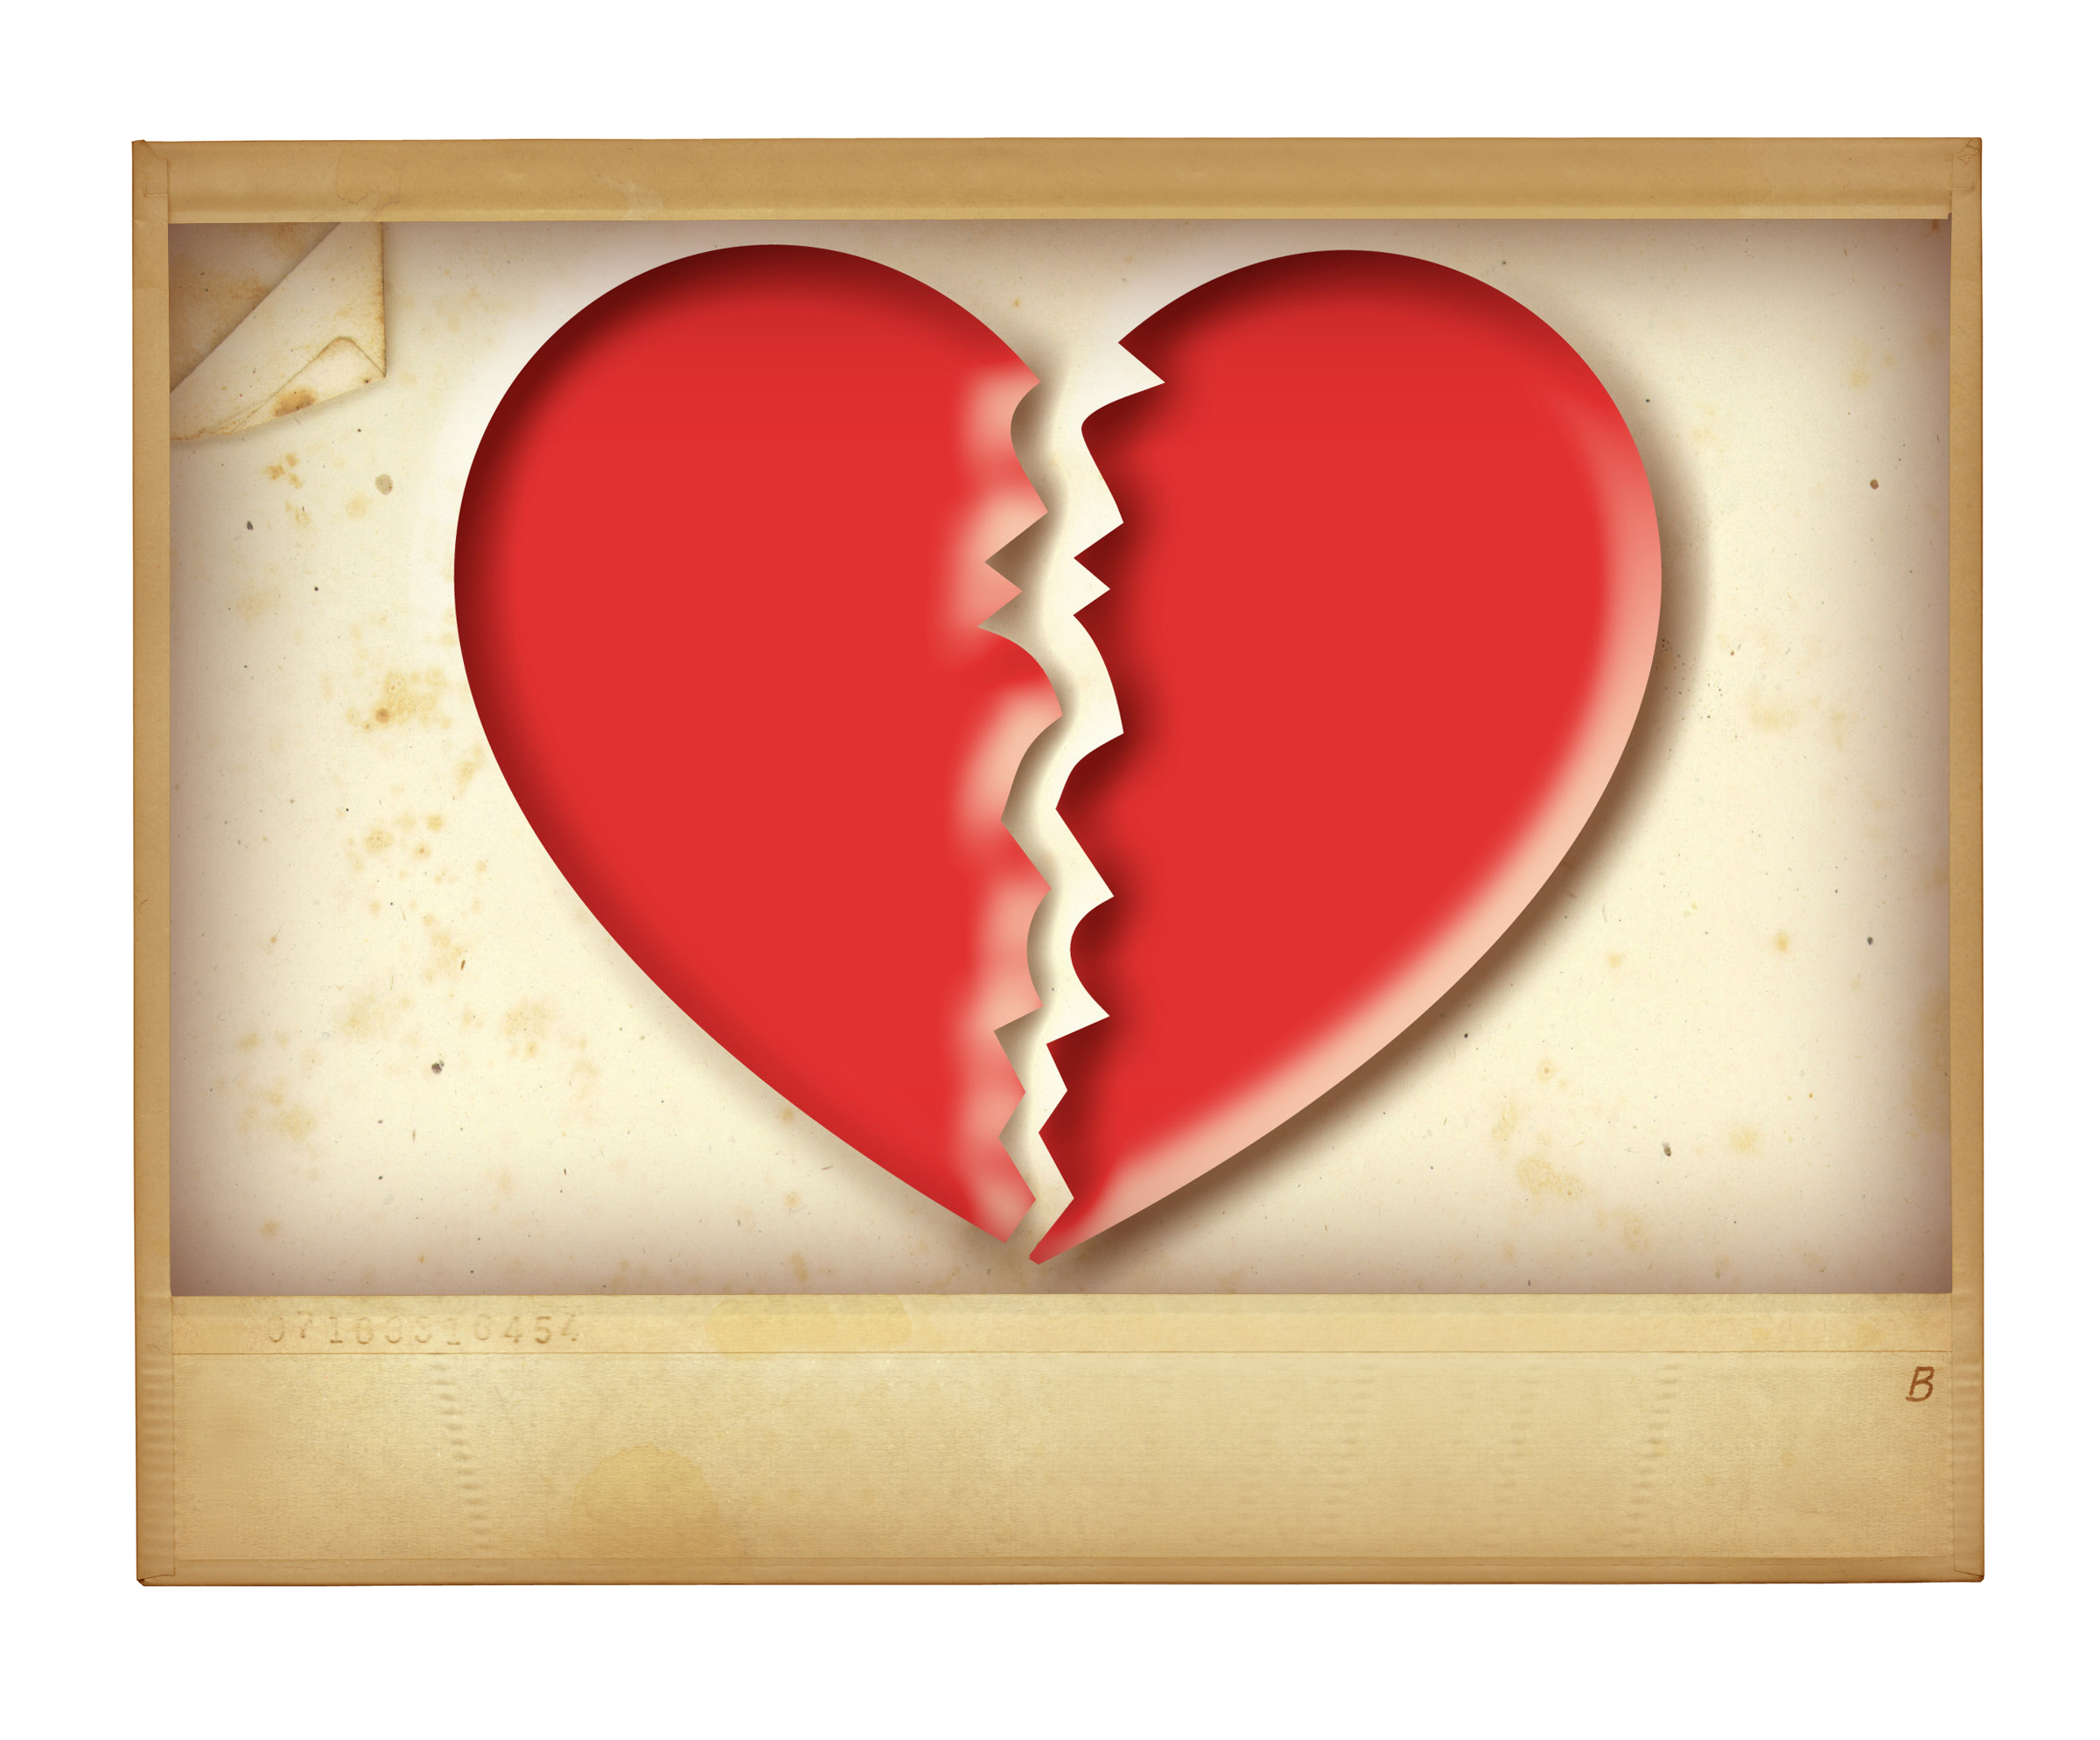 Corporate divorce: How to emerge unscathed